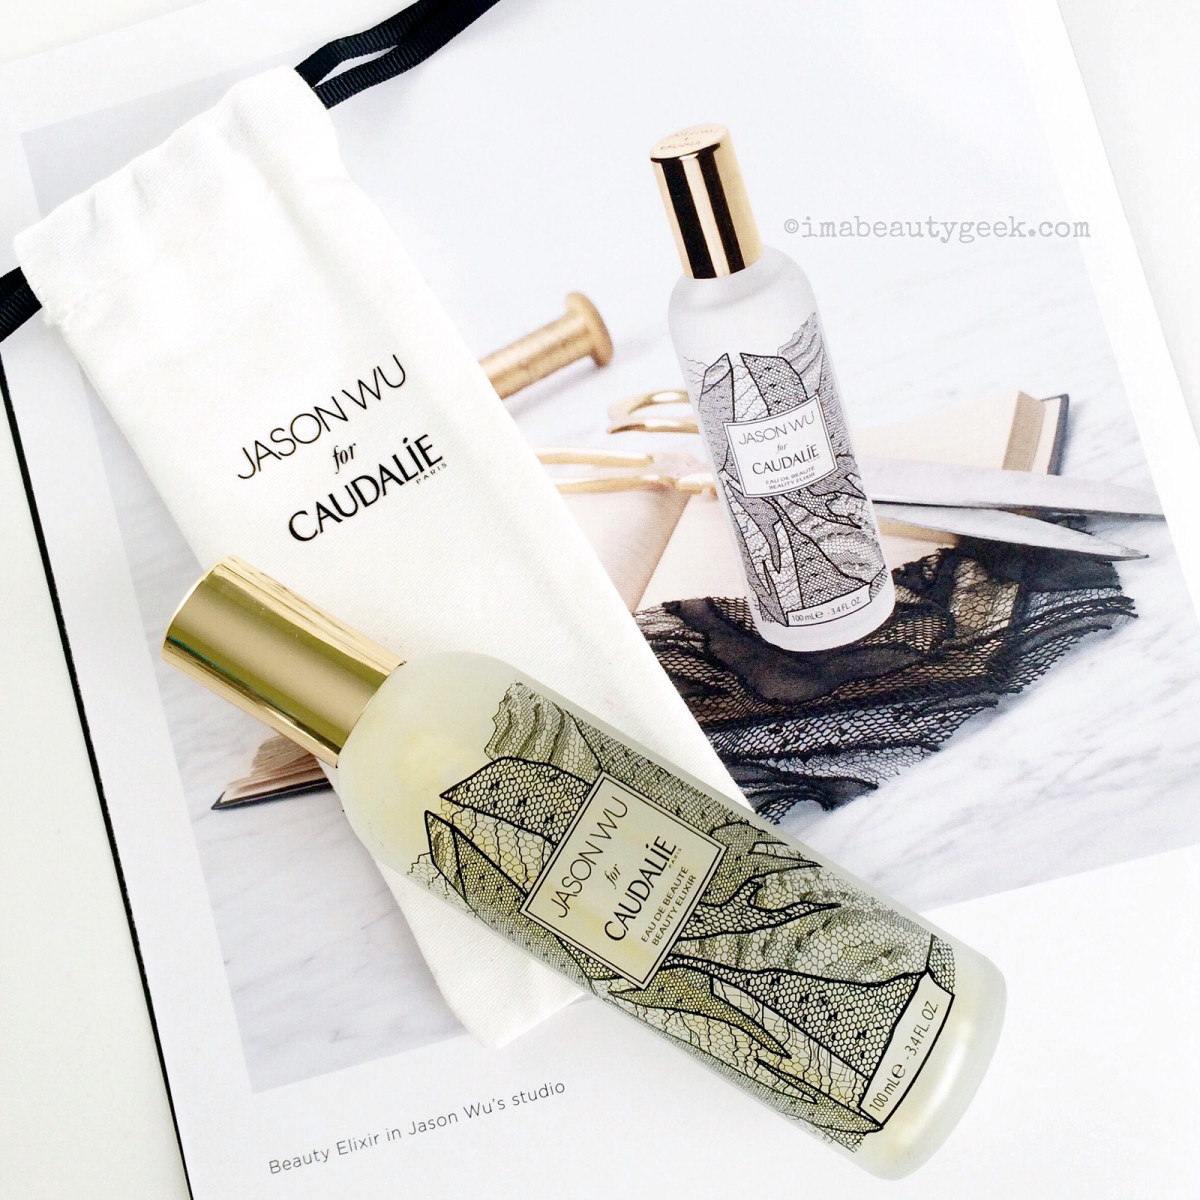 Jason Wu Caudalie Beauty Elixir collector edition bottle